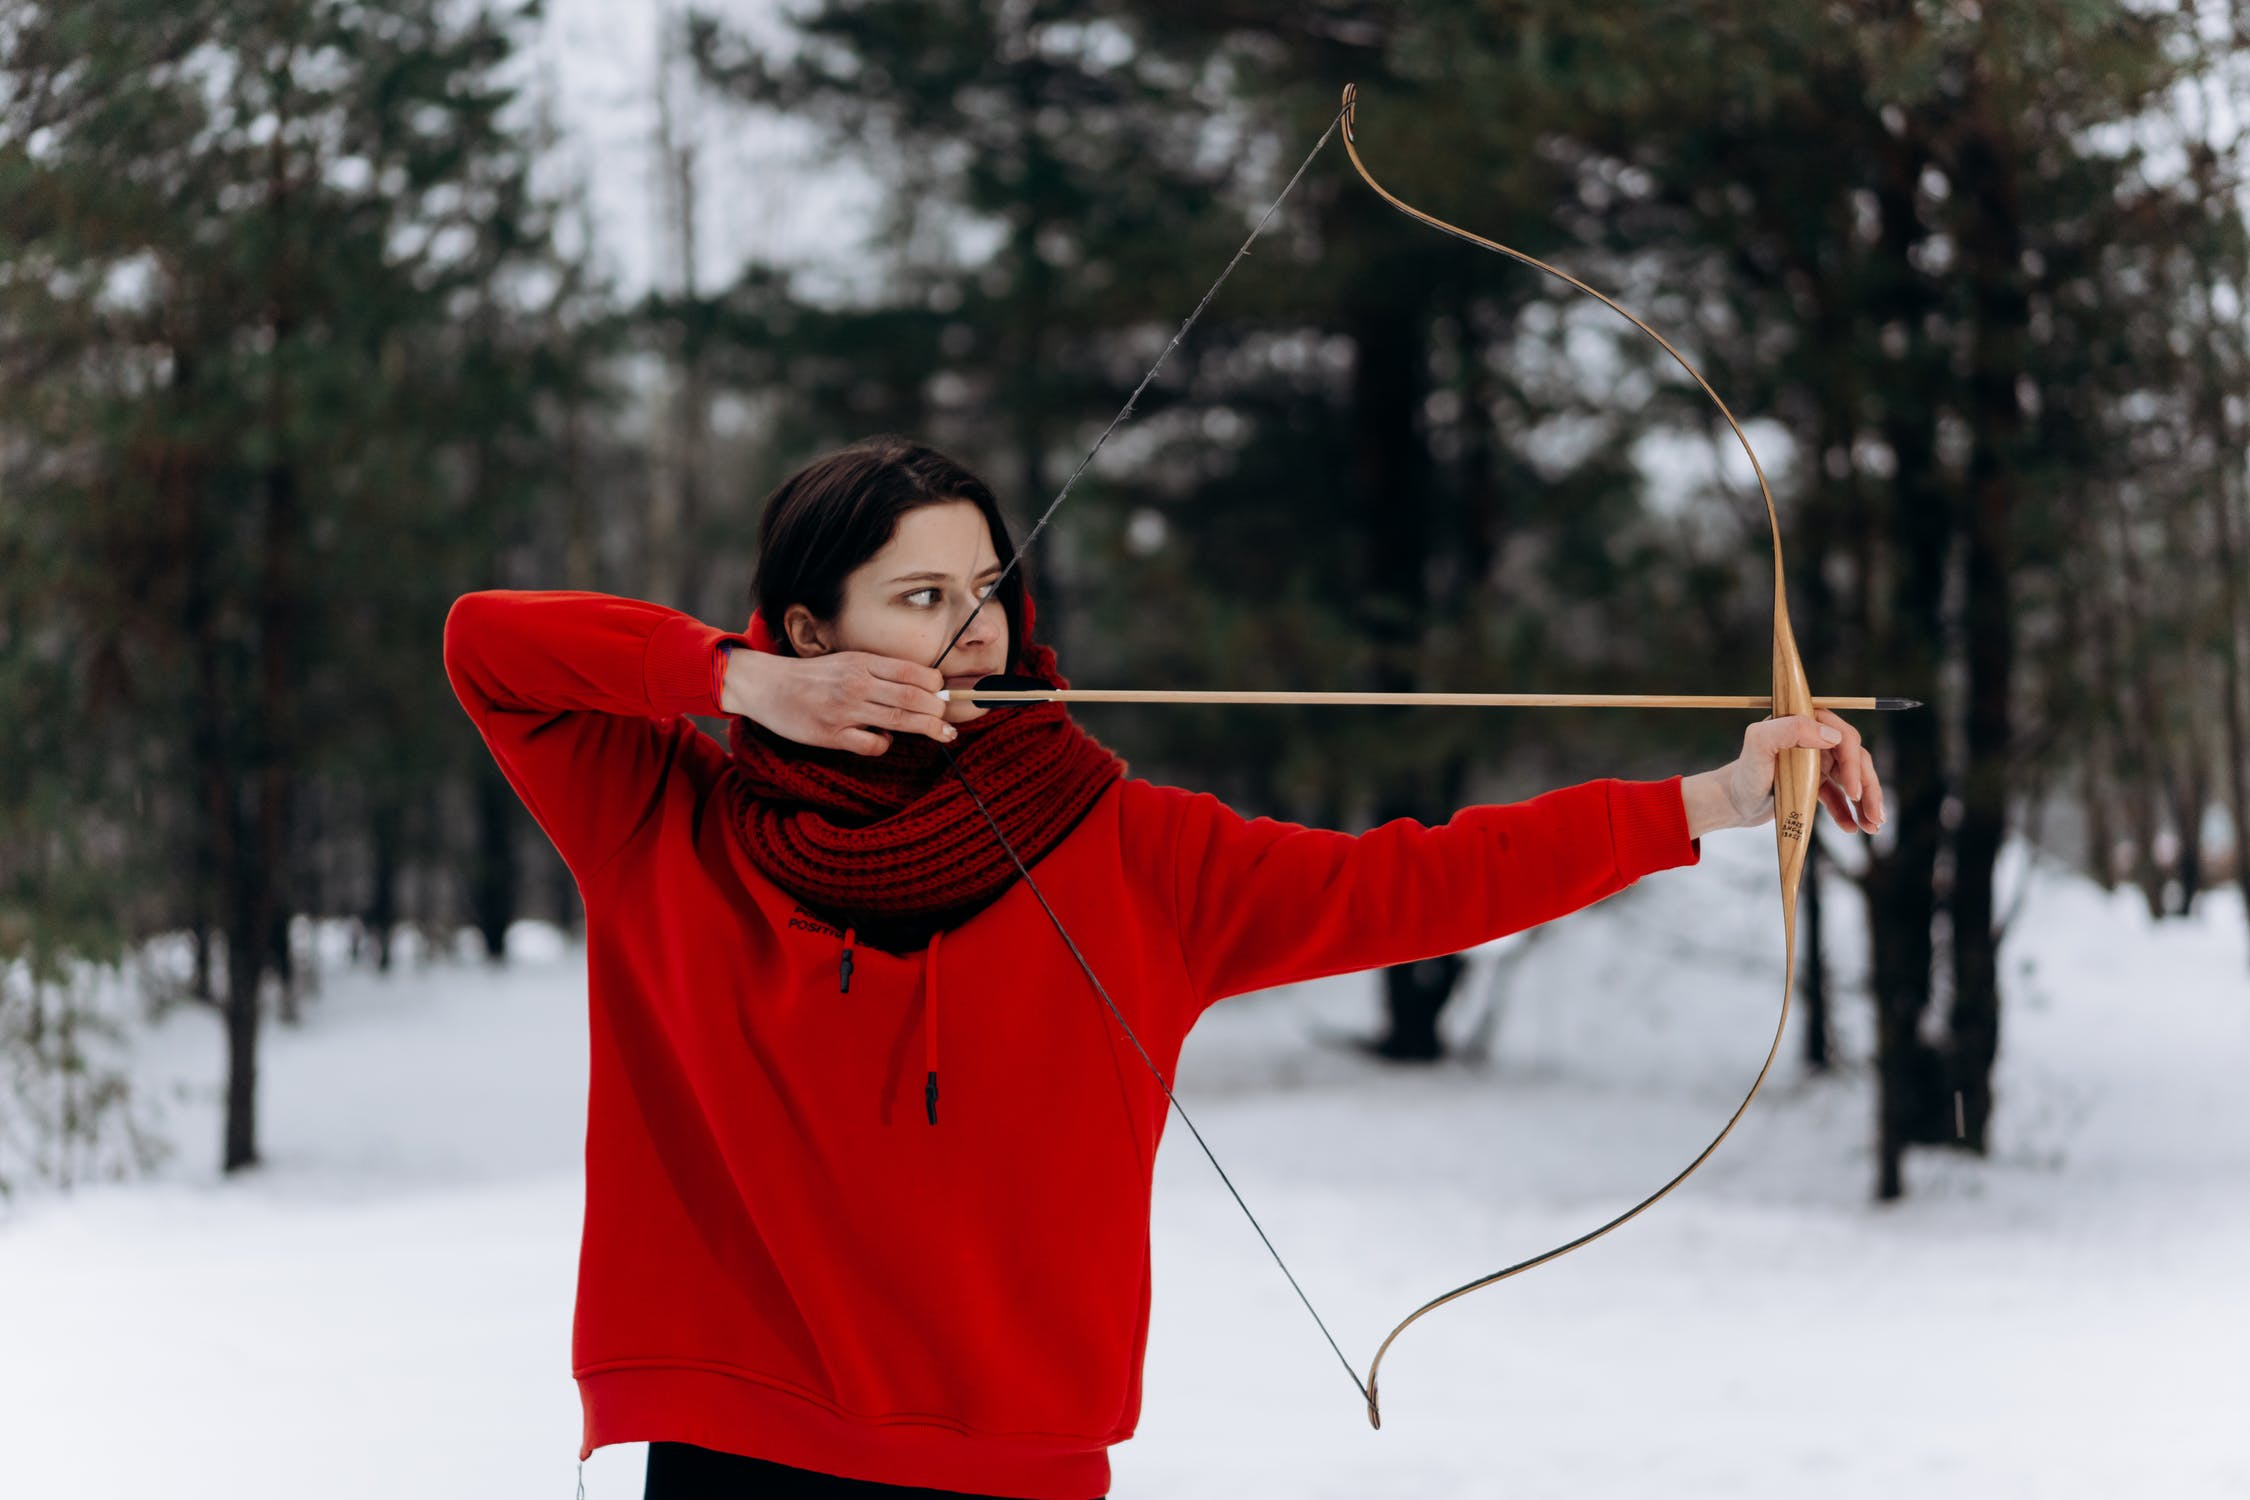 archery, yescomusa, Fitness and sports equipment